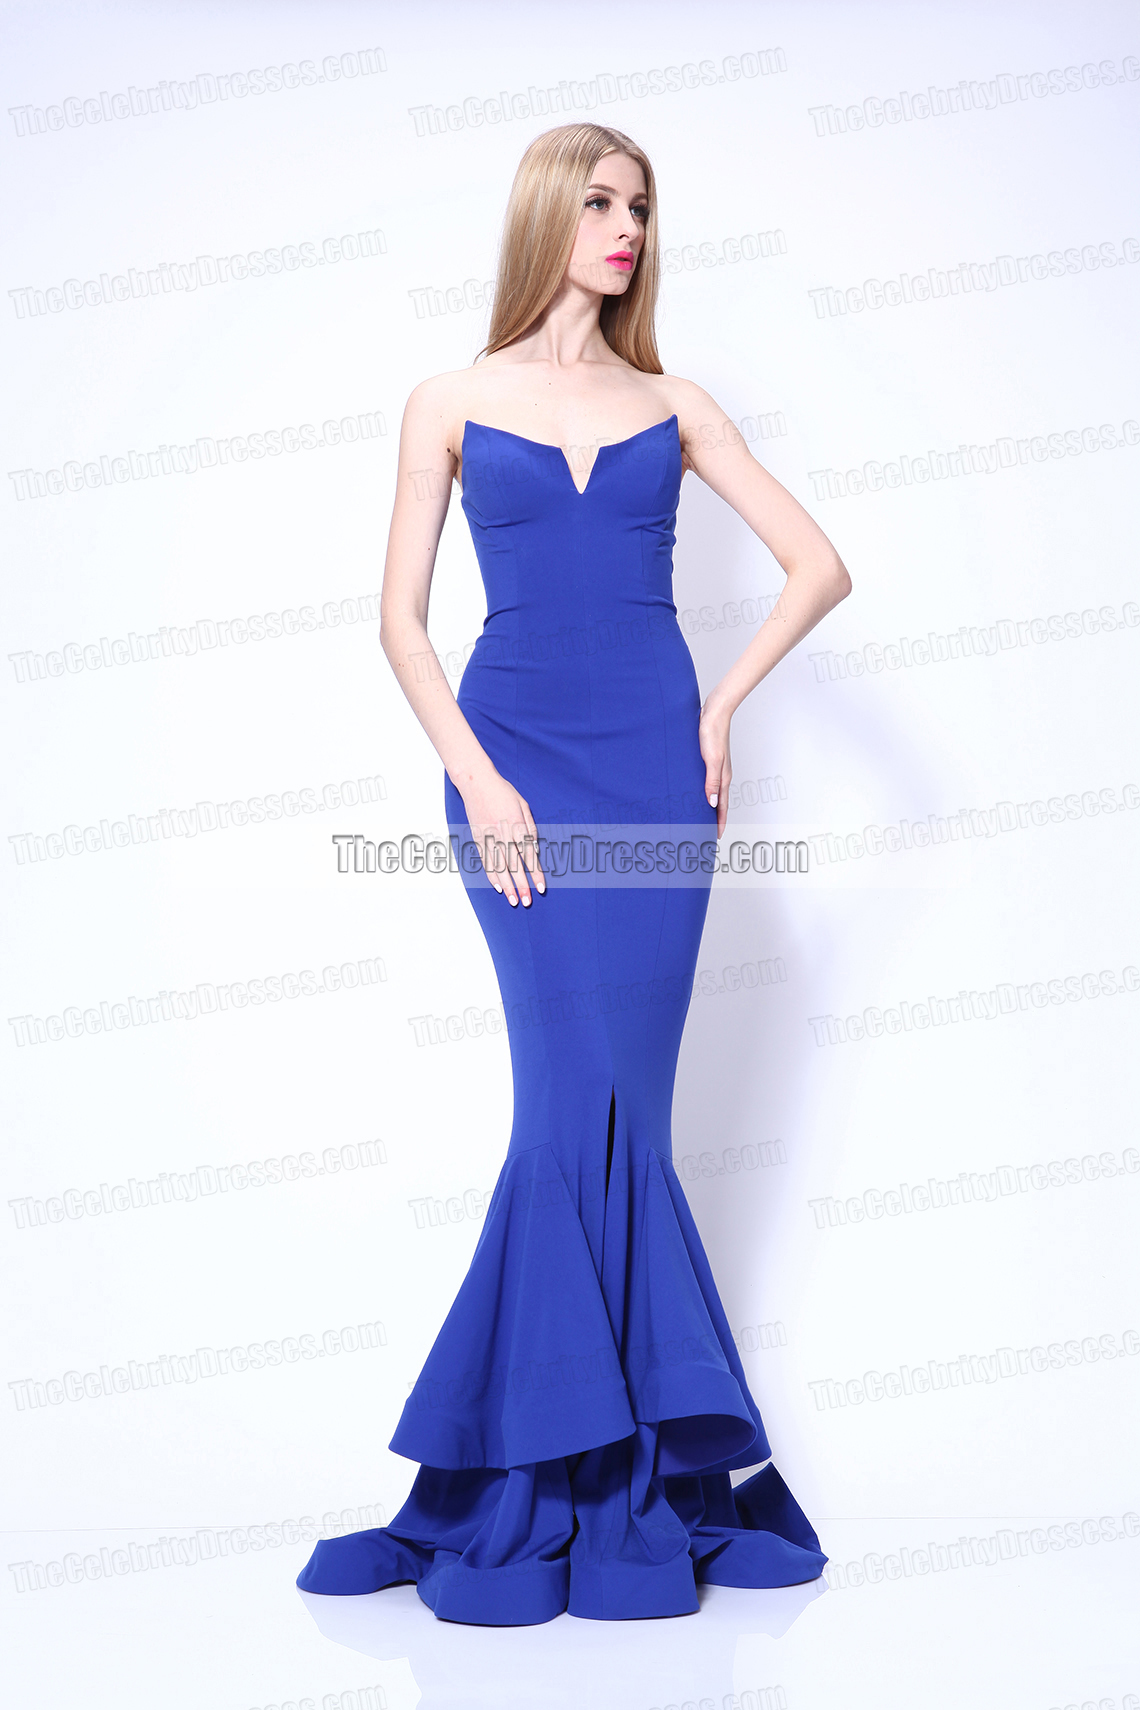 Luxury Ebay Prom Dresses 2013 Images Princess Wedding